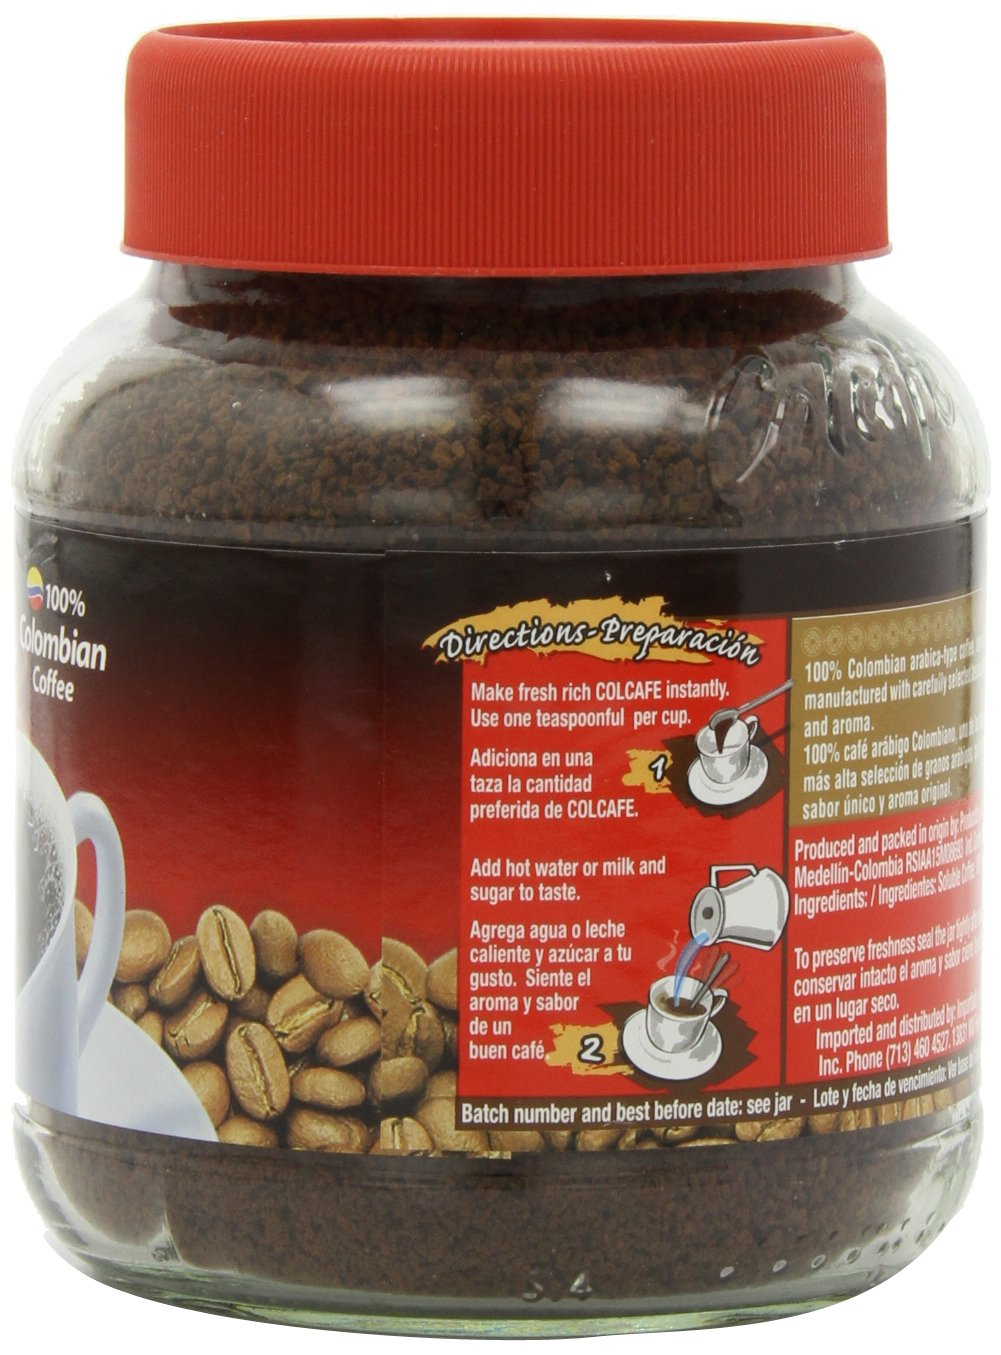 Amazon.com : Colcafe Instant Coffee, 7.05-Ounce (Pack of 4) : Grocery & Gourmet Food